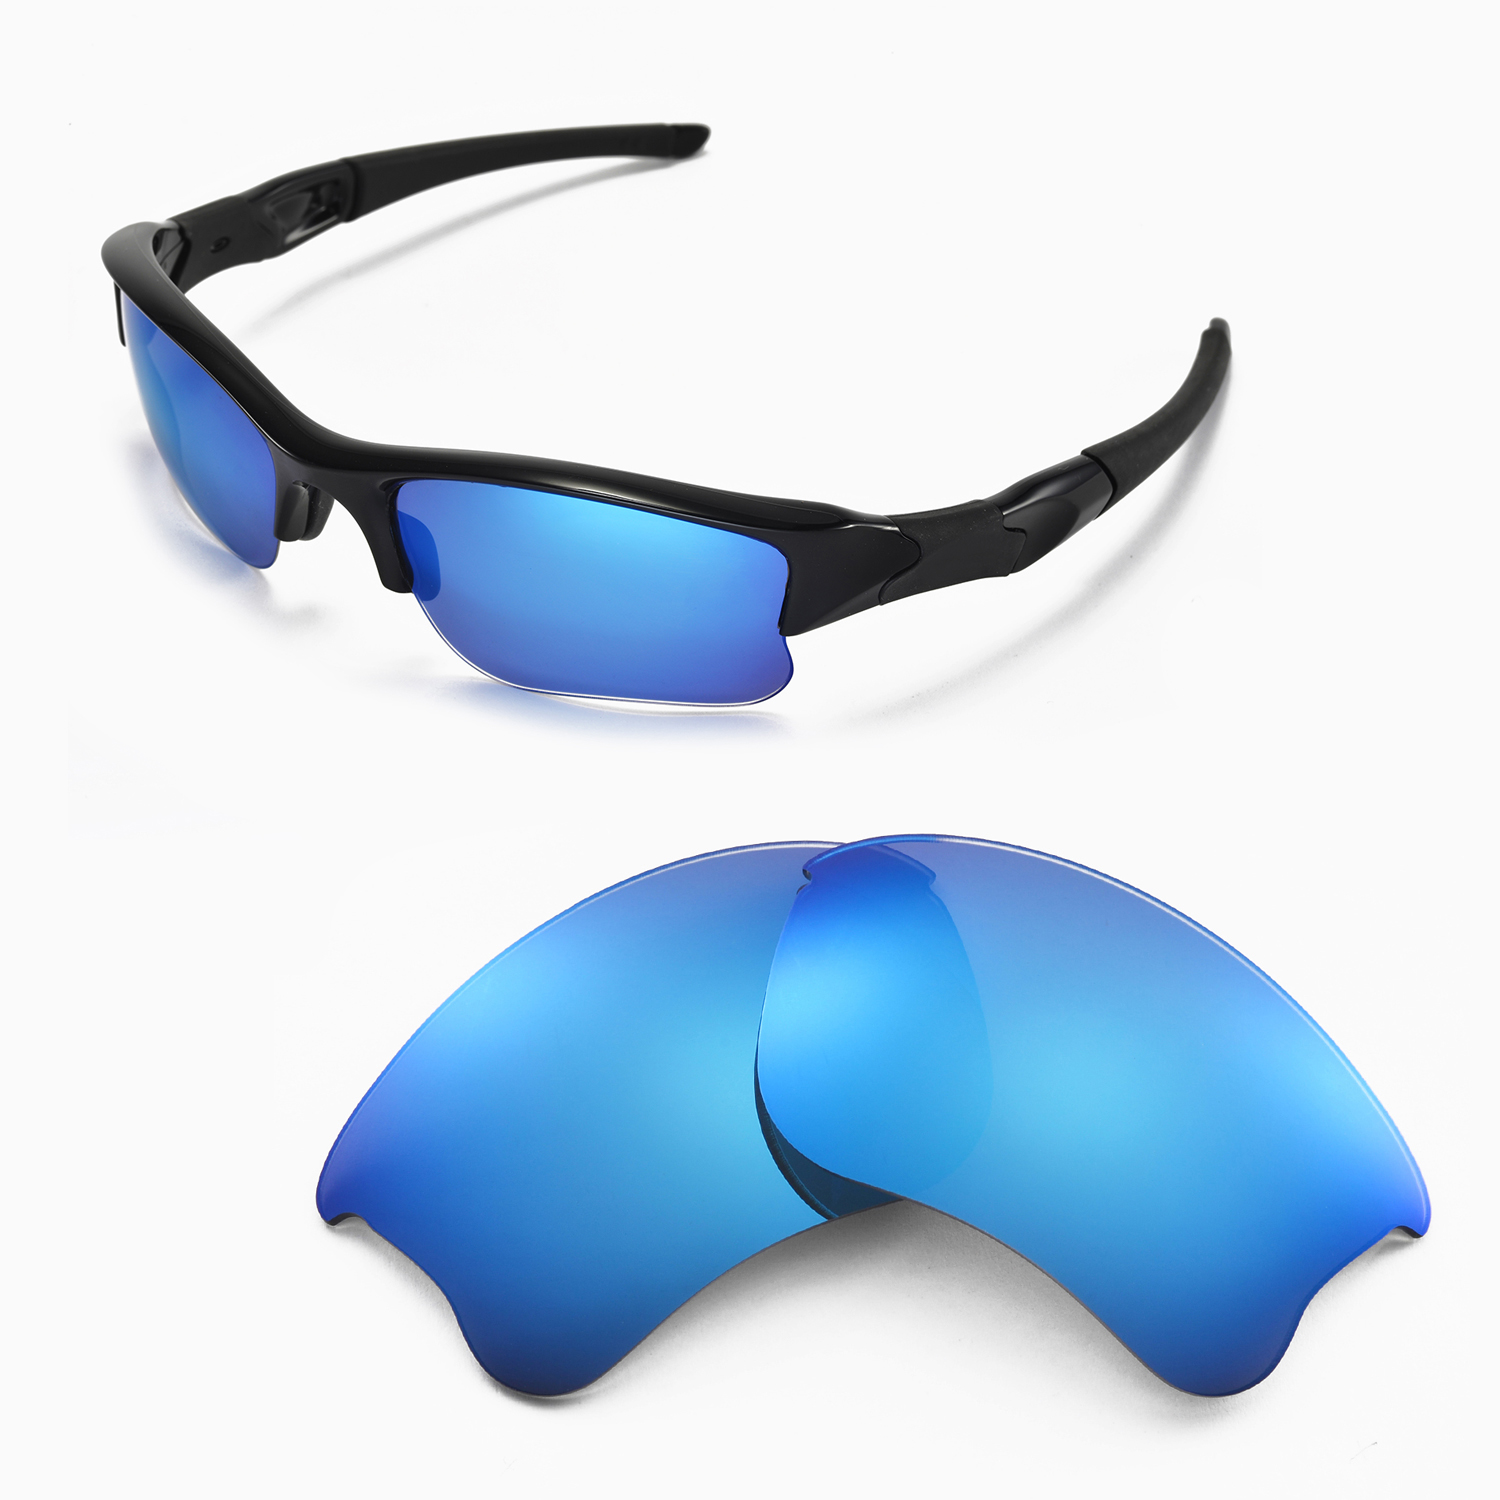 b324545f061 Details about WL Polarized Ice Blue Replacement Lenses For Oakley Flak  Jacket XLJ Sunglasses